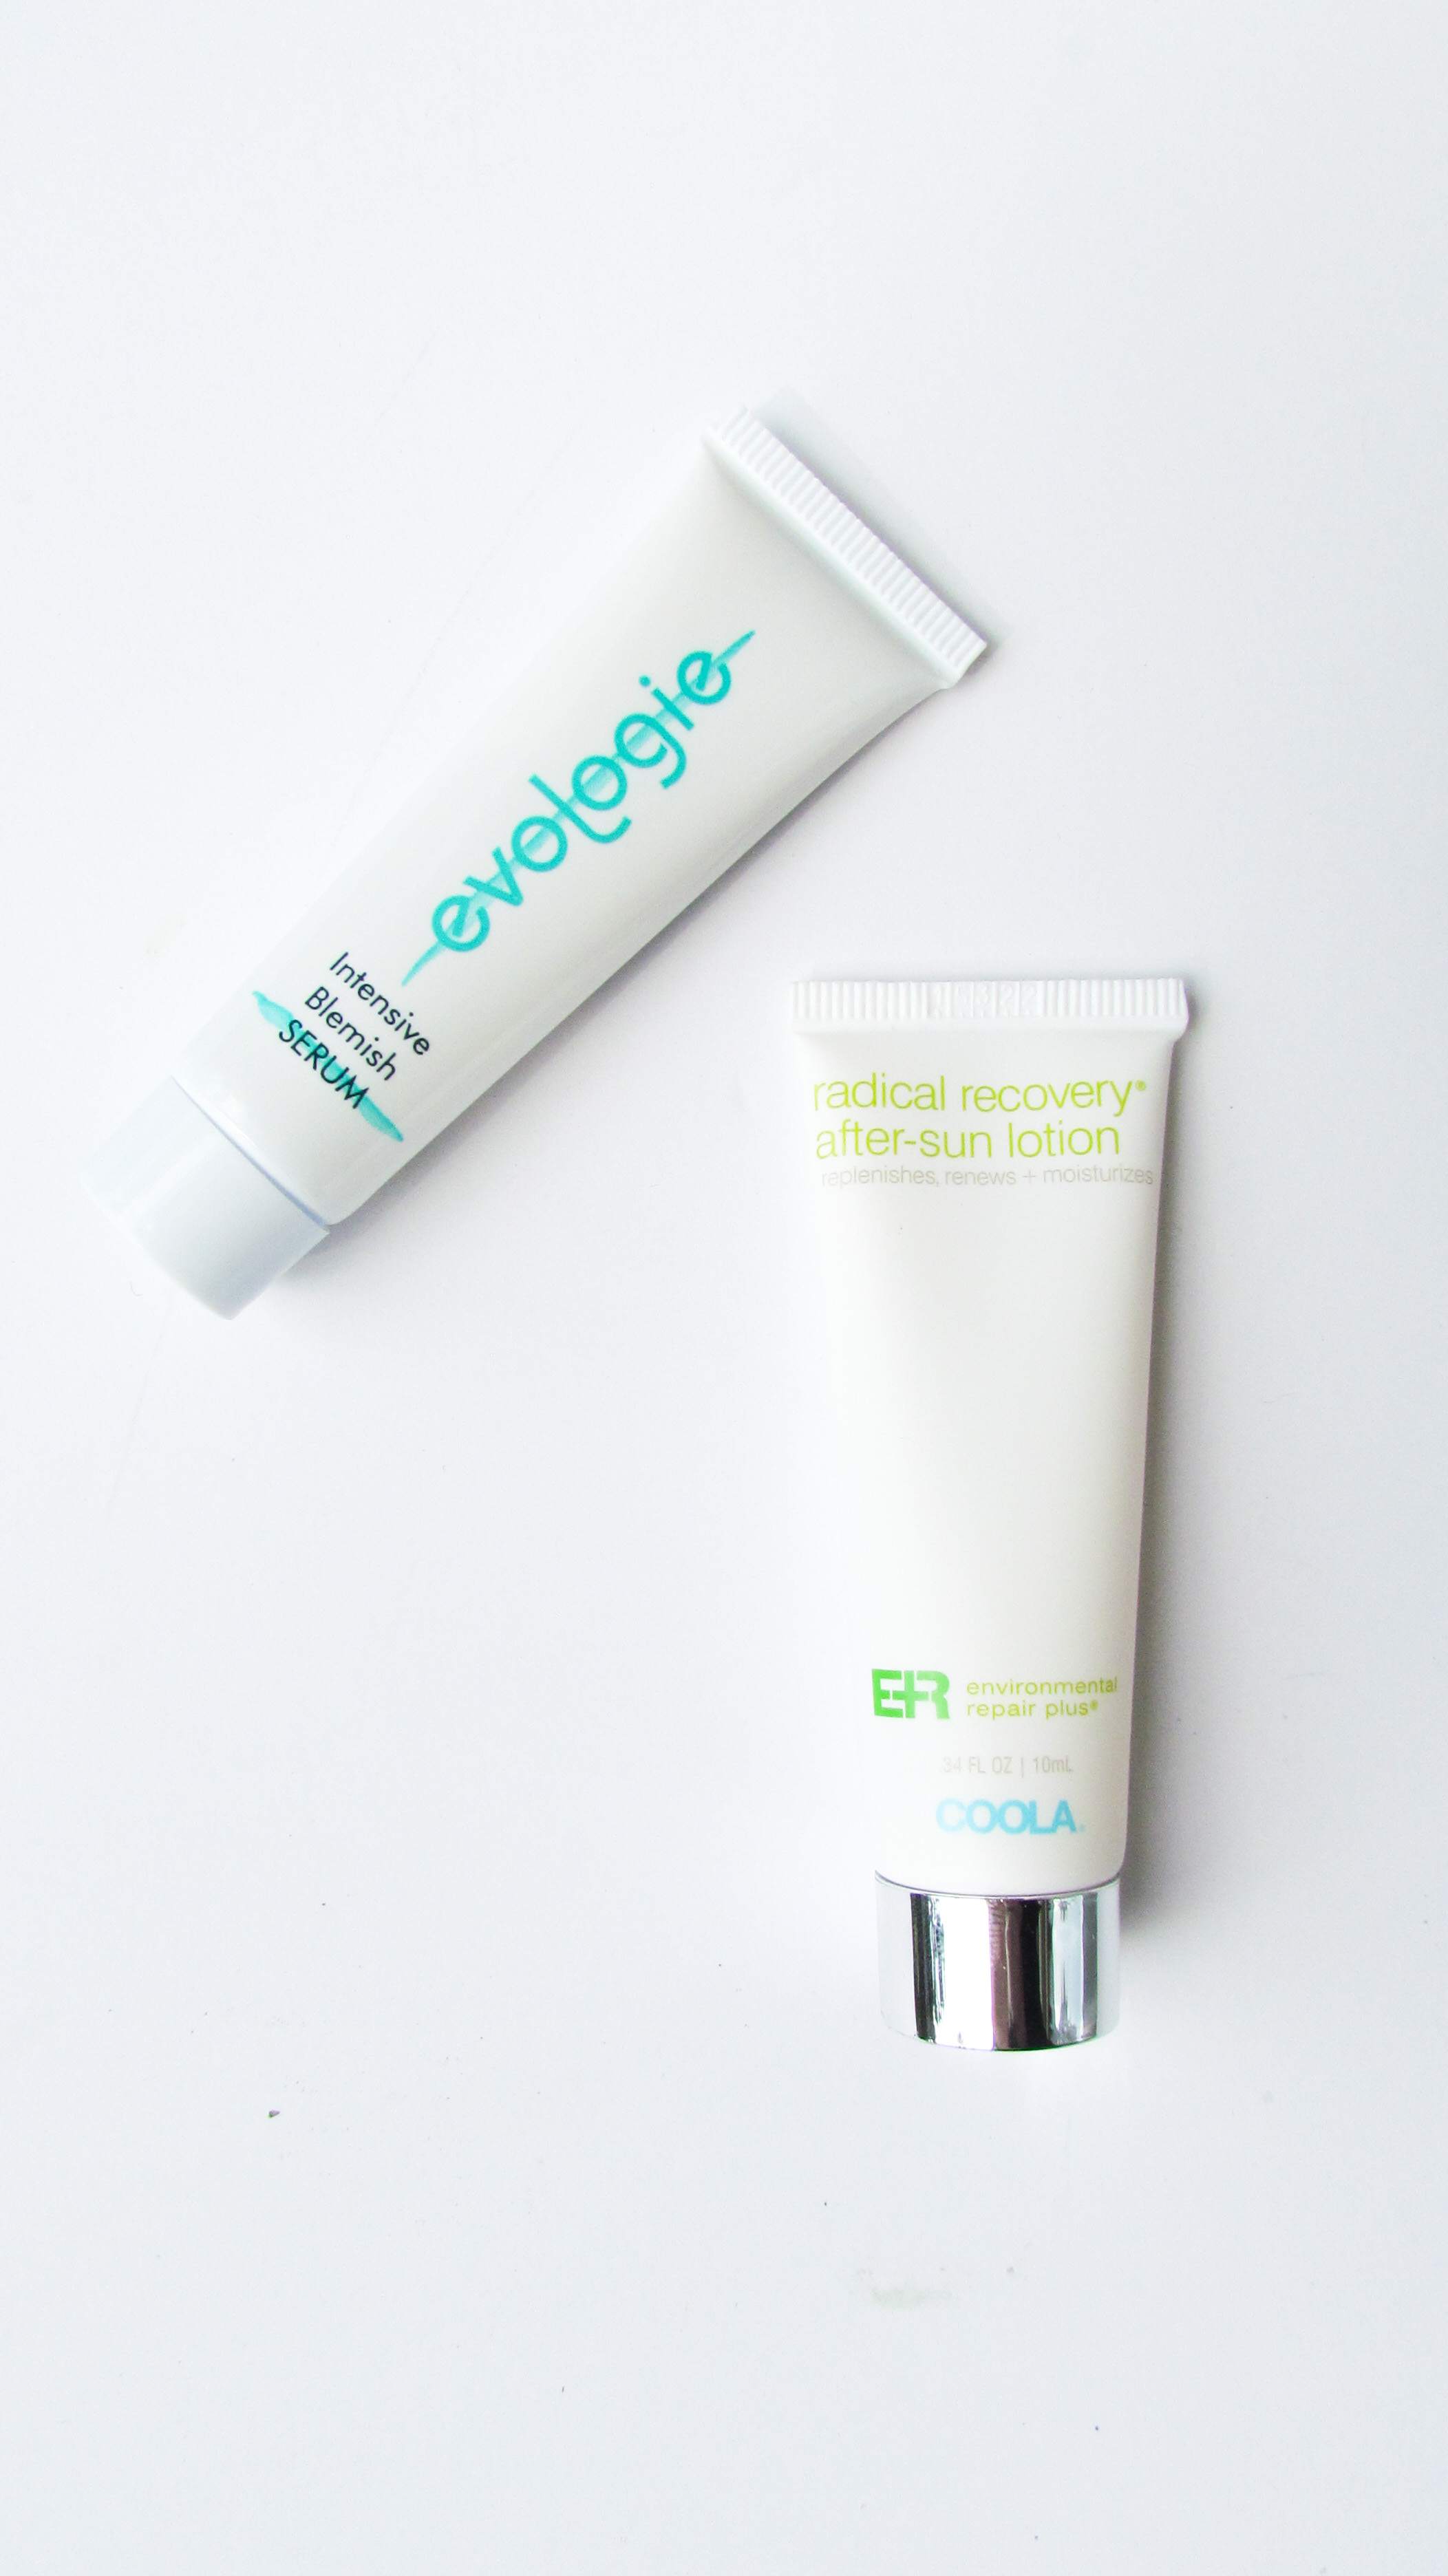 Coola Environmental Repair Plus Radical Recovery After Sun Lotion, Evologie Intensive Blemish Serum